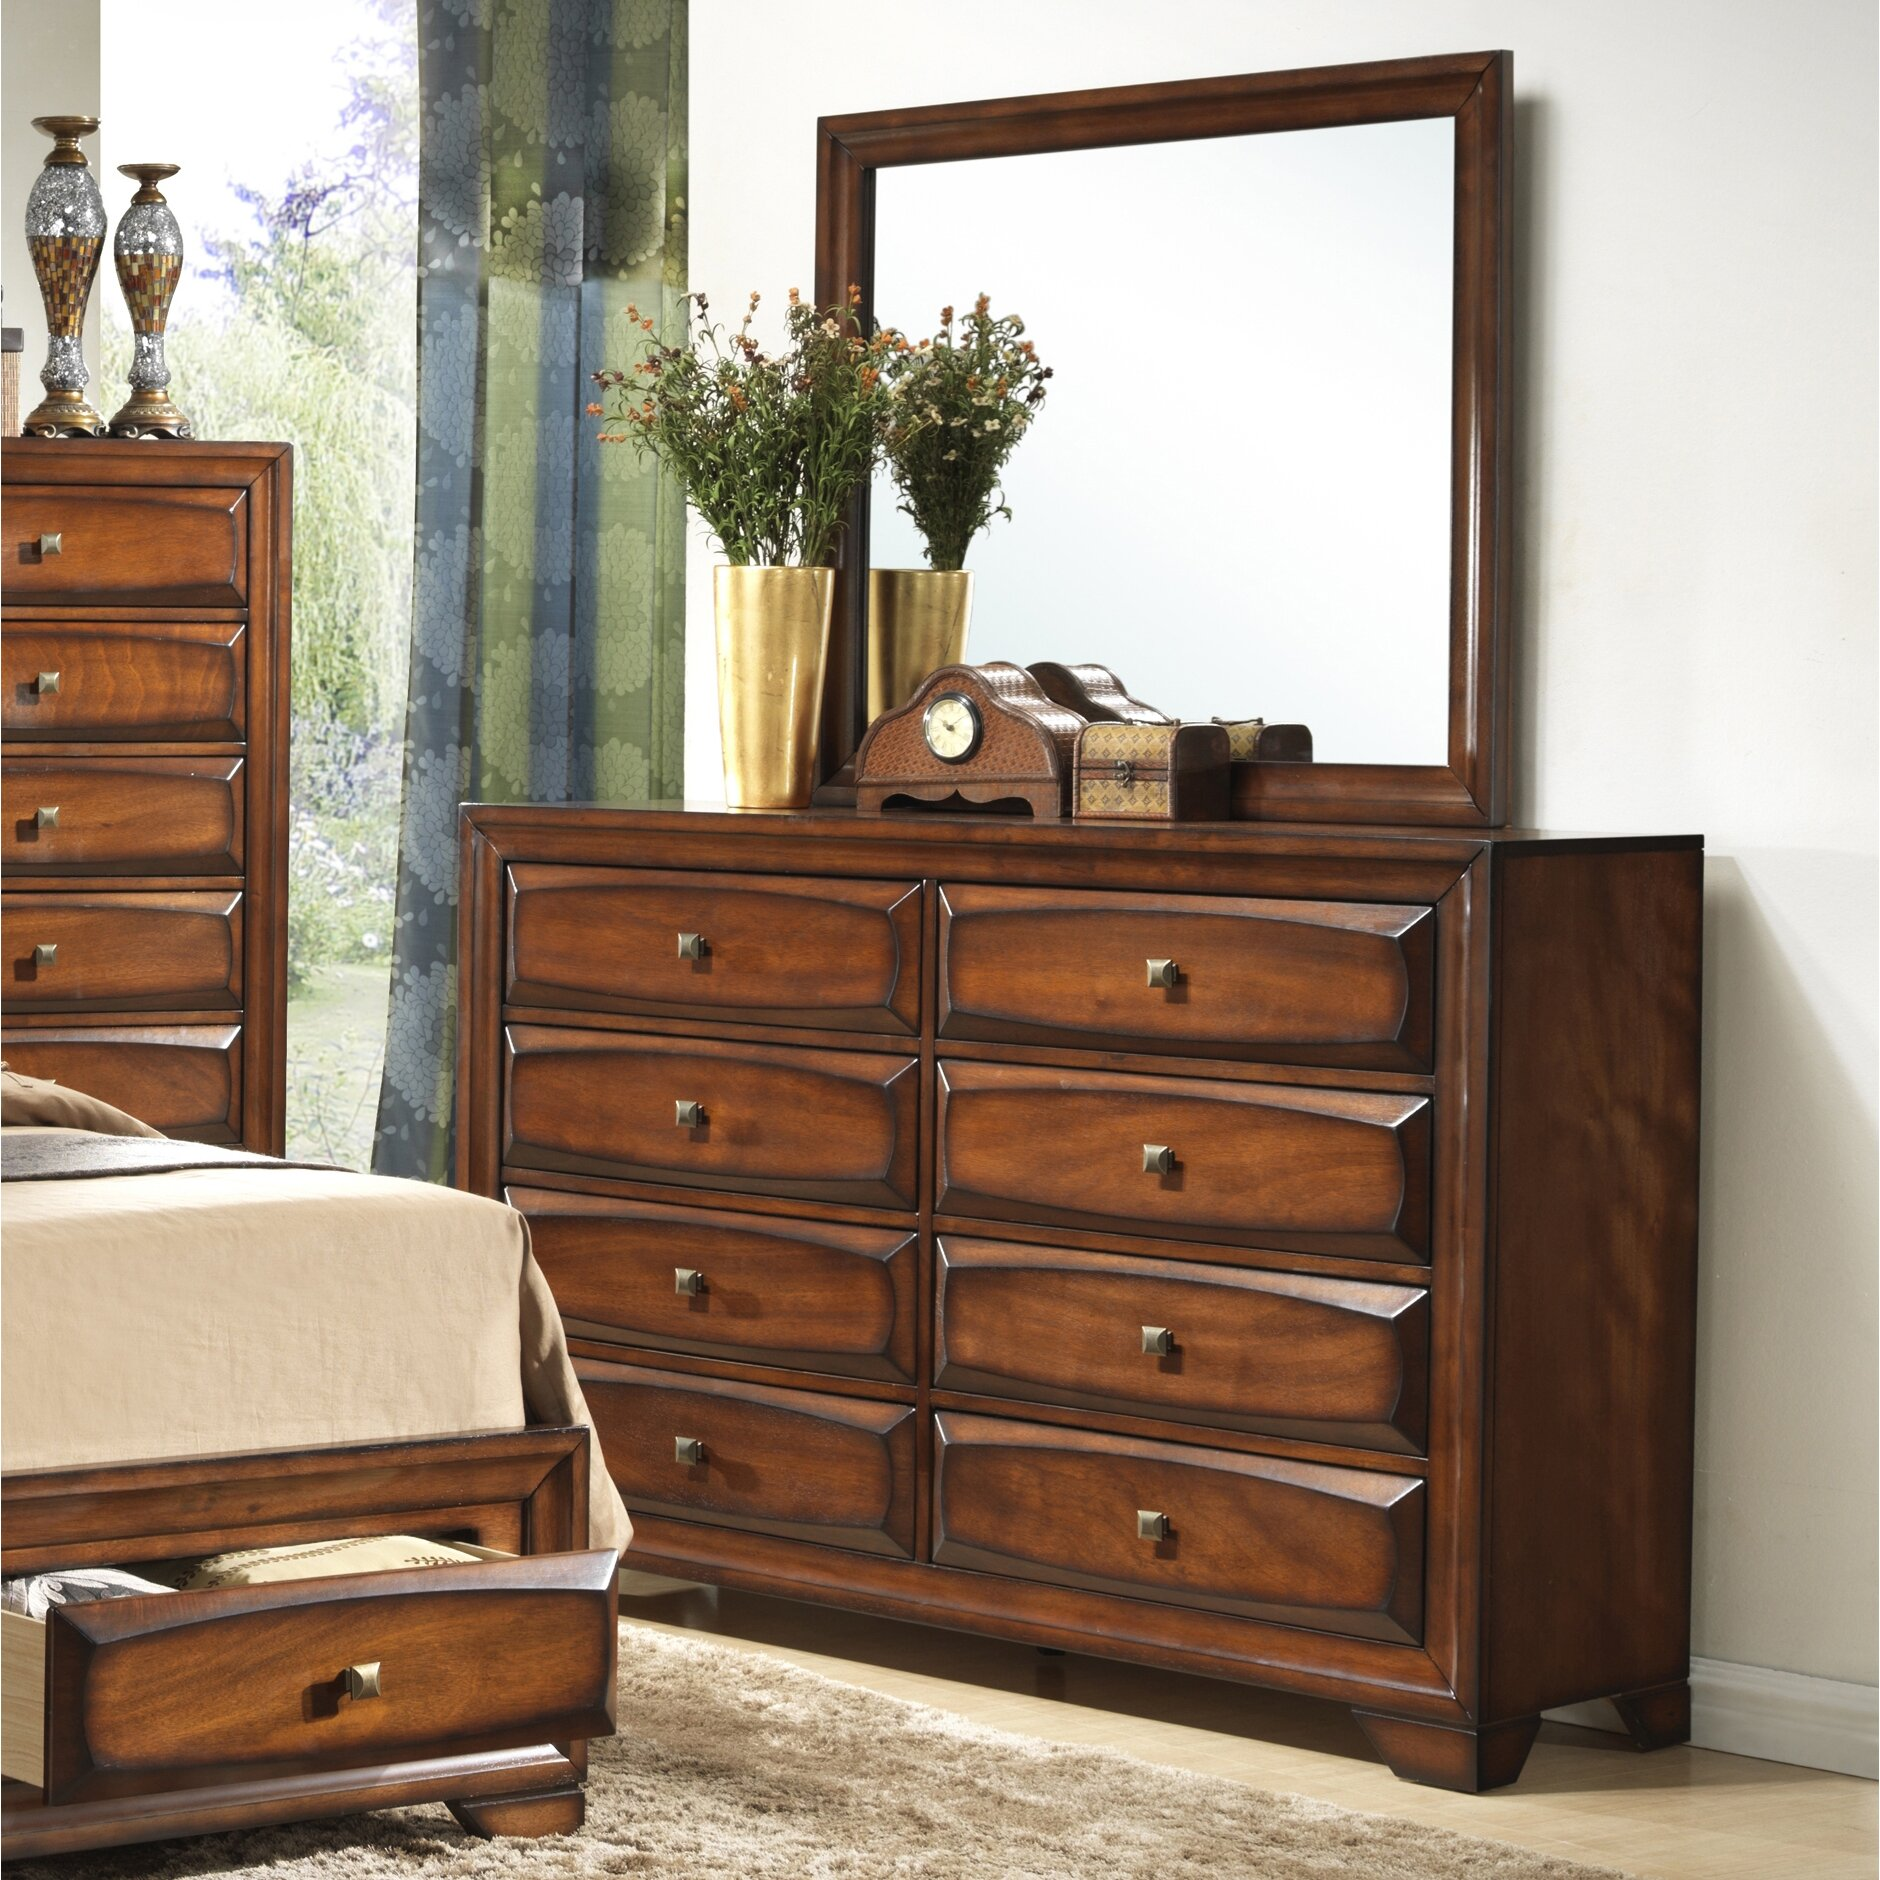 Roundhill Furniture Oakland 6 Drawer Dresser with Mirror